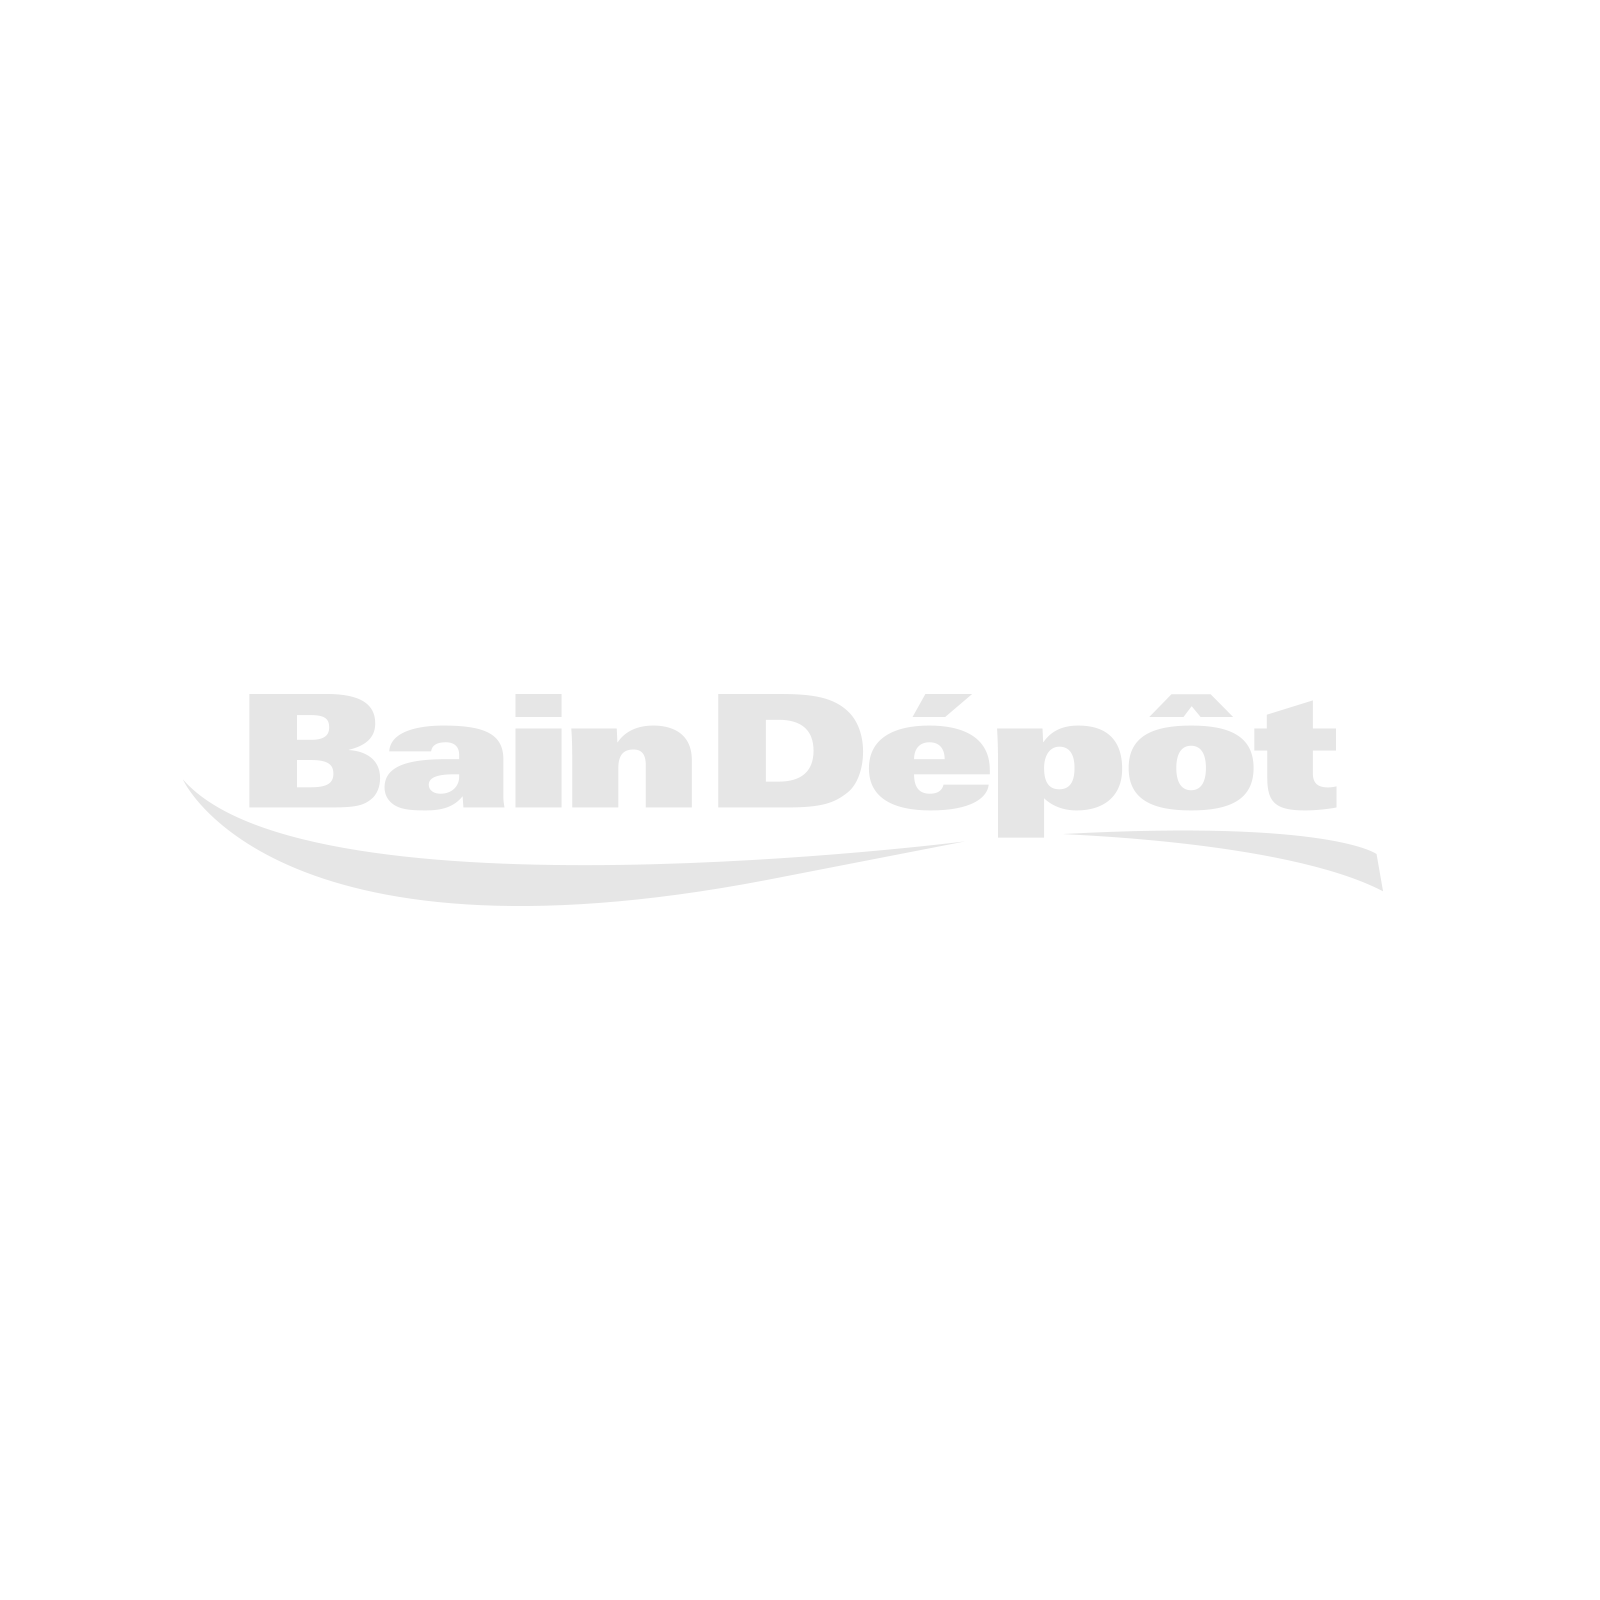 "48"" x 32"" Shower kit with opening on 32"" side and left side corner base"